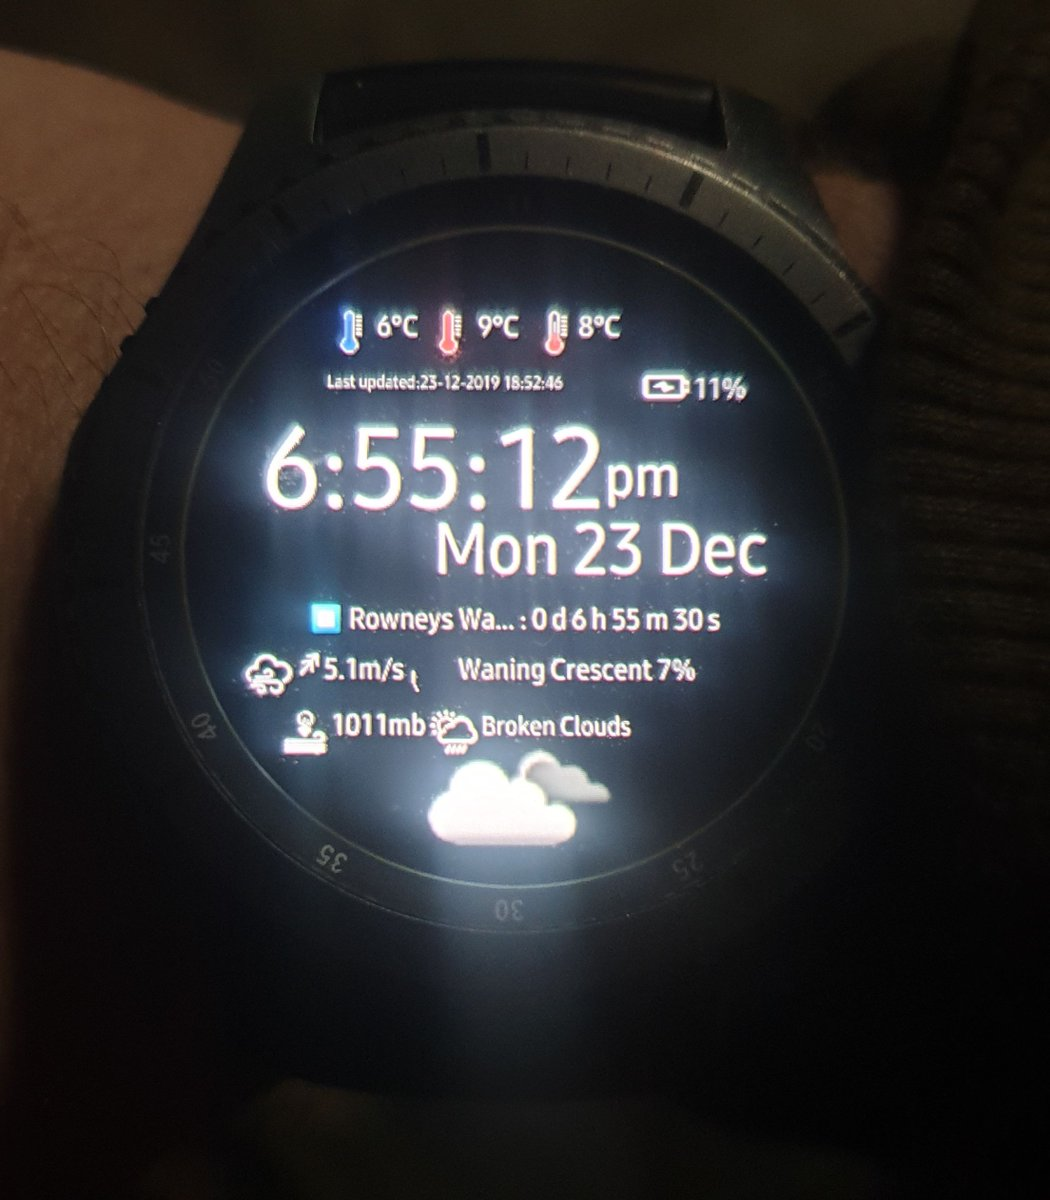 Carpcal fishing watchface is due for upload to the store soon #carp<b>Catch</b> #carpfishinglog #car